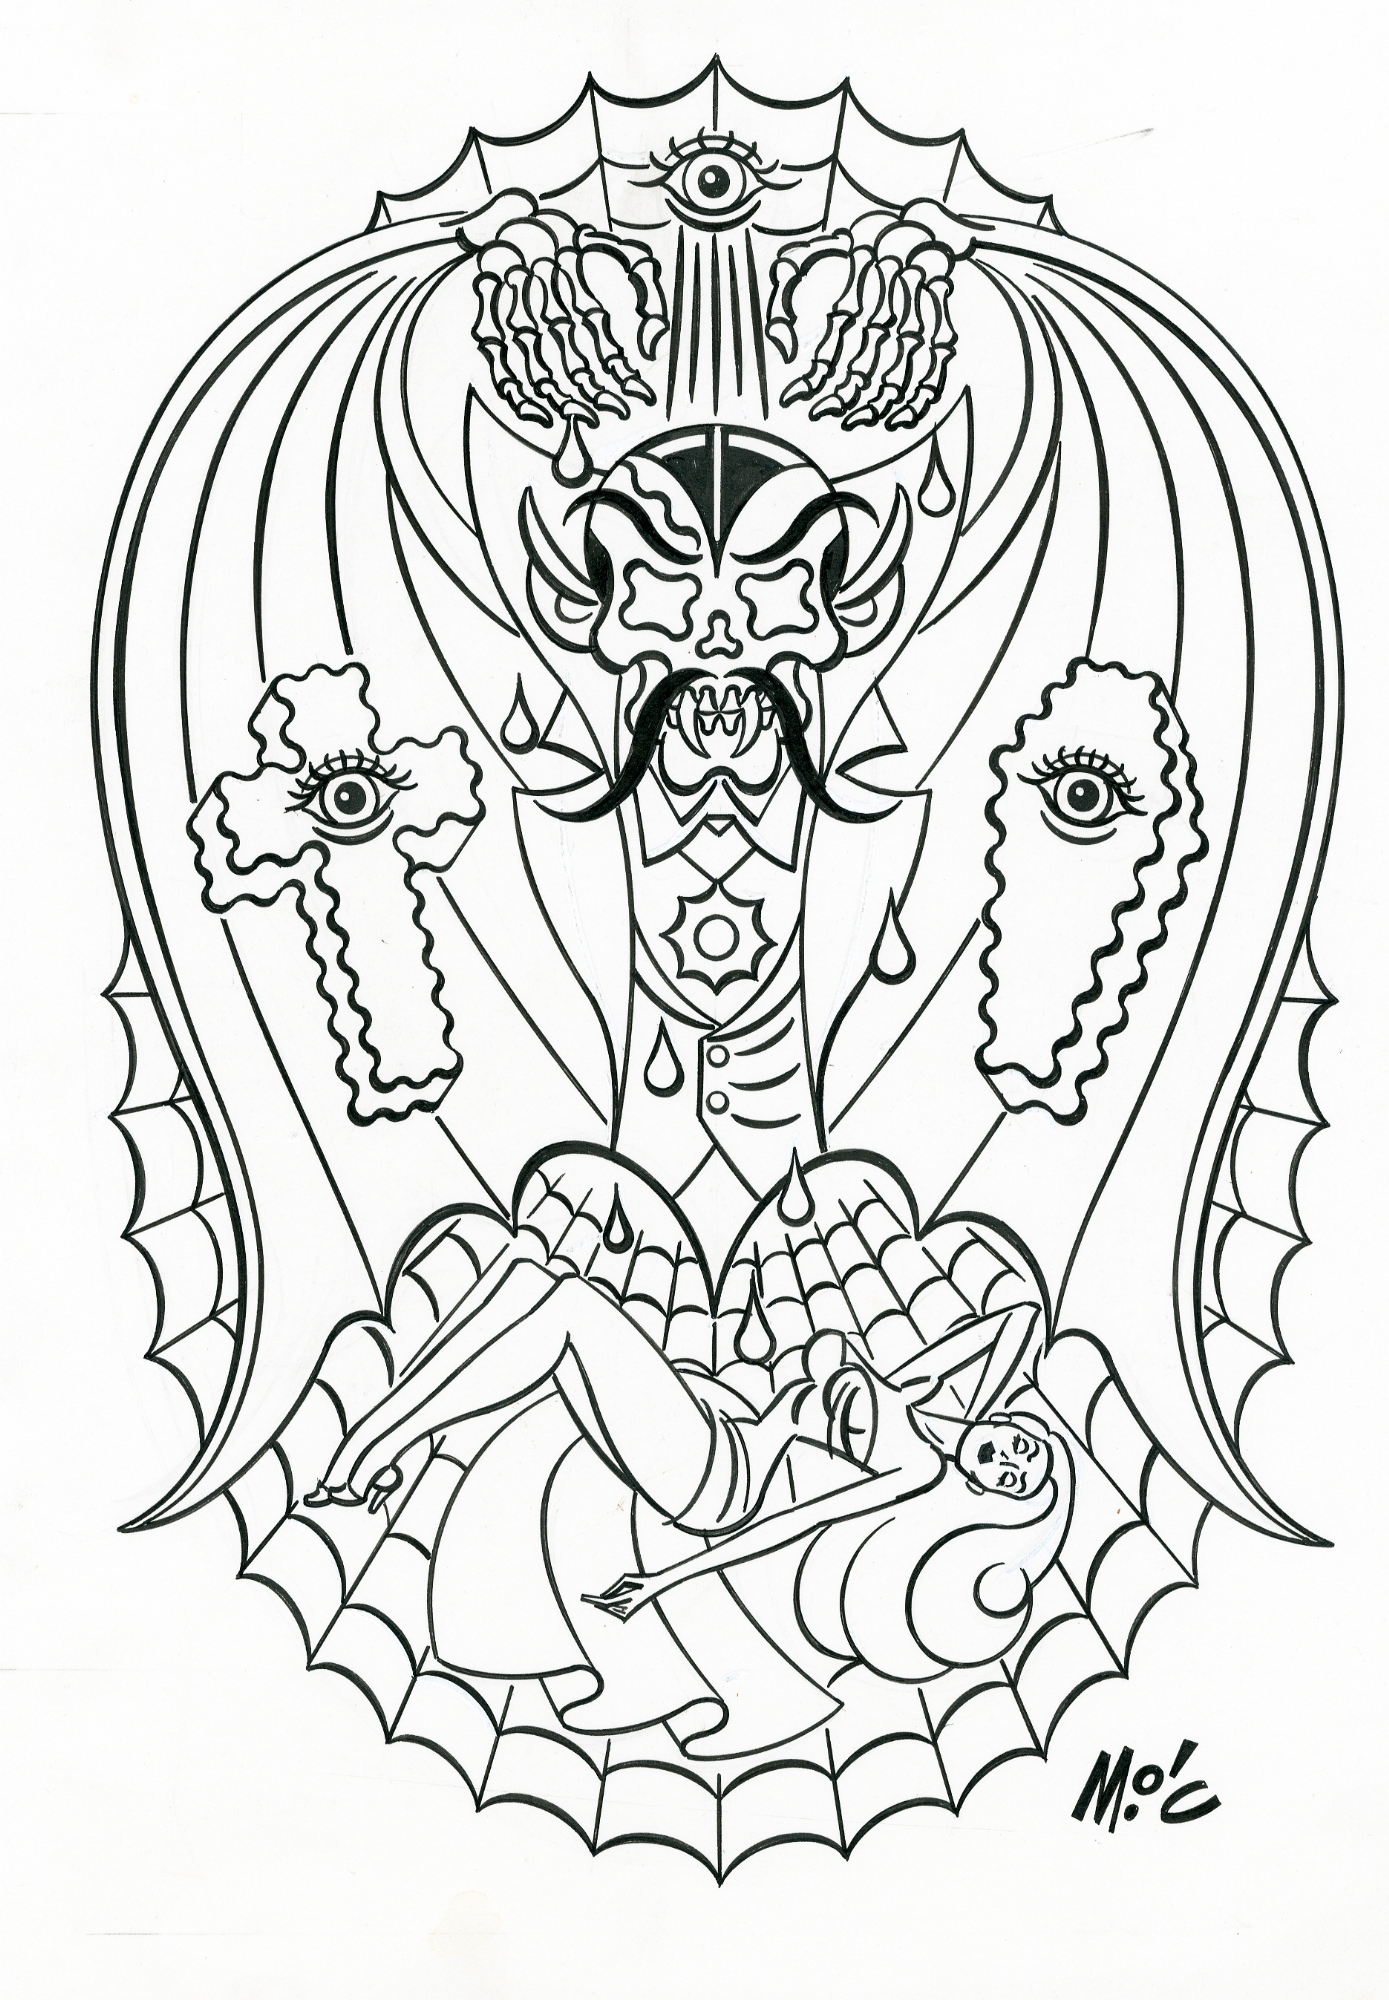 Vampire and Pin-Up Tattoo Design Art!, in Mitchell O